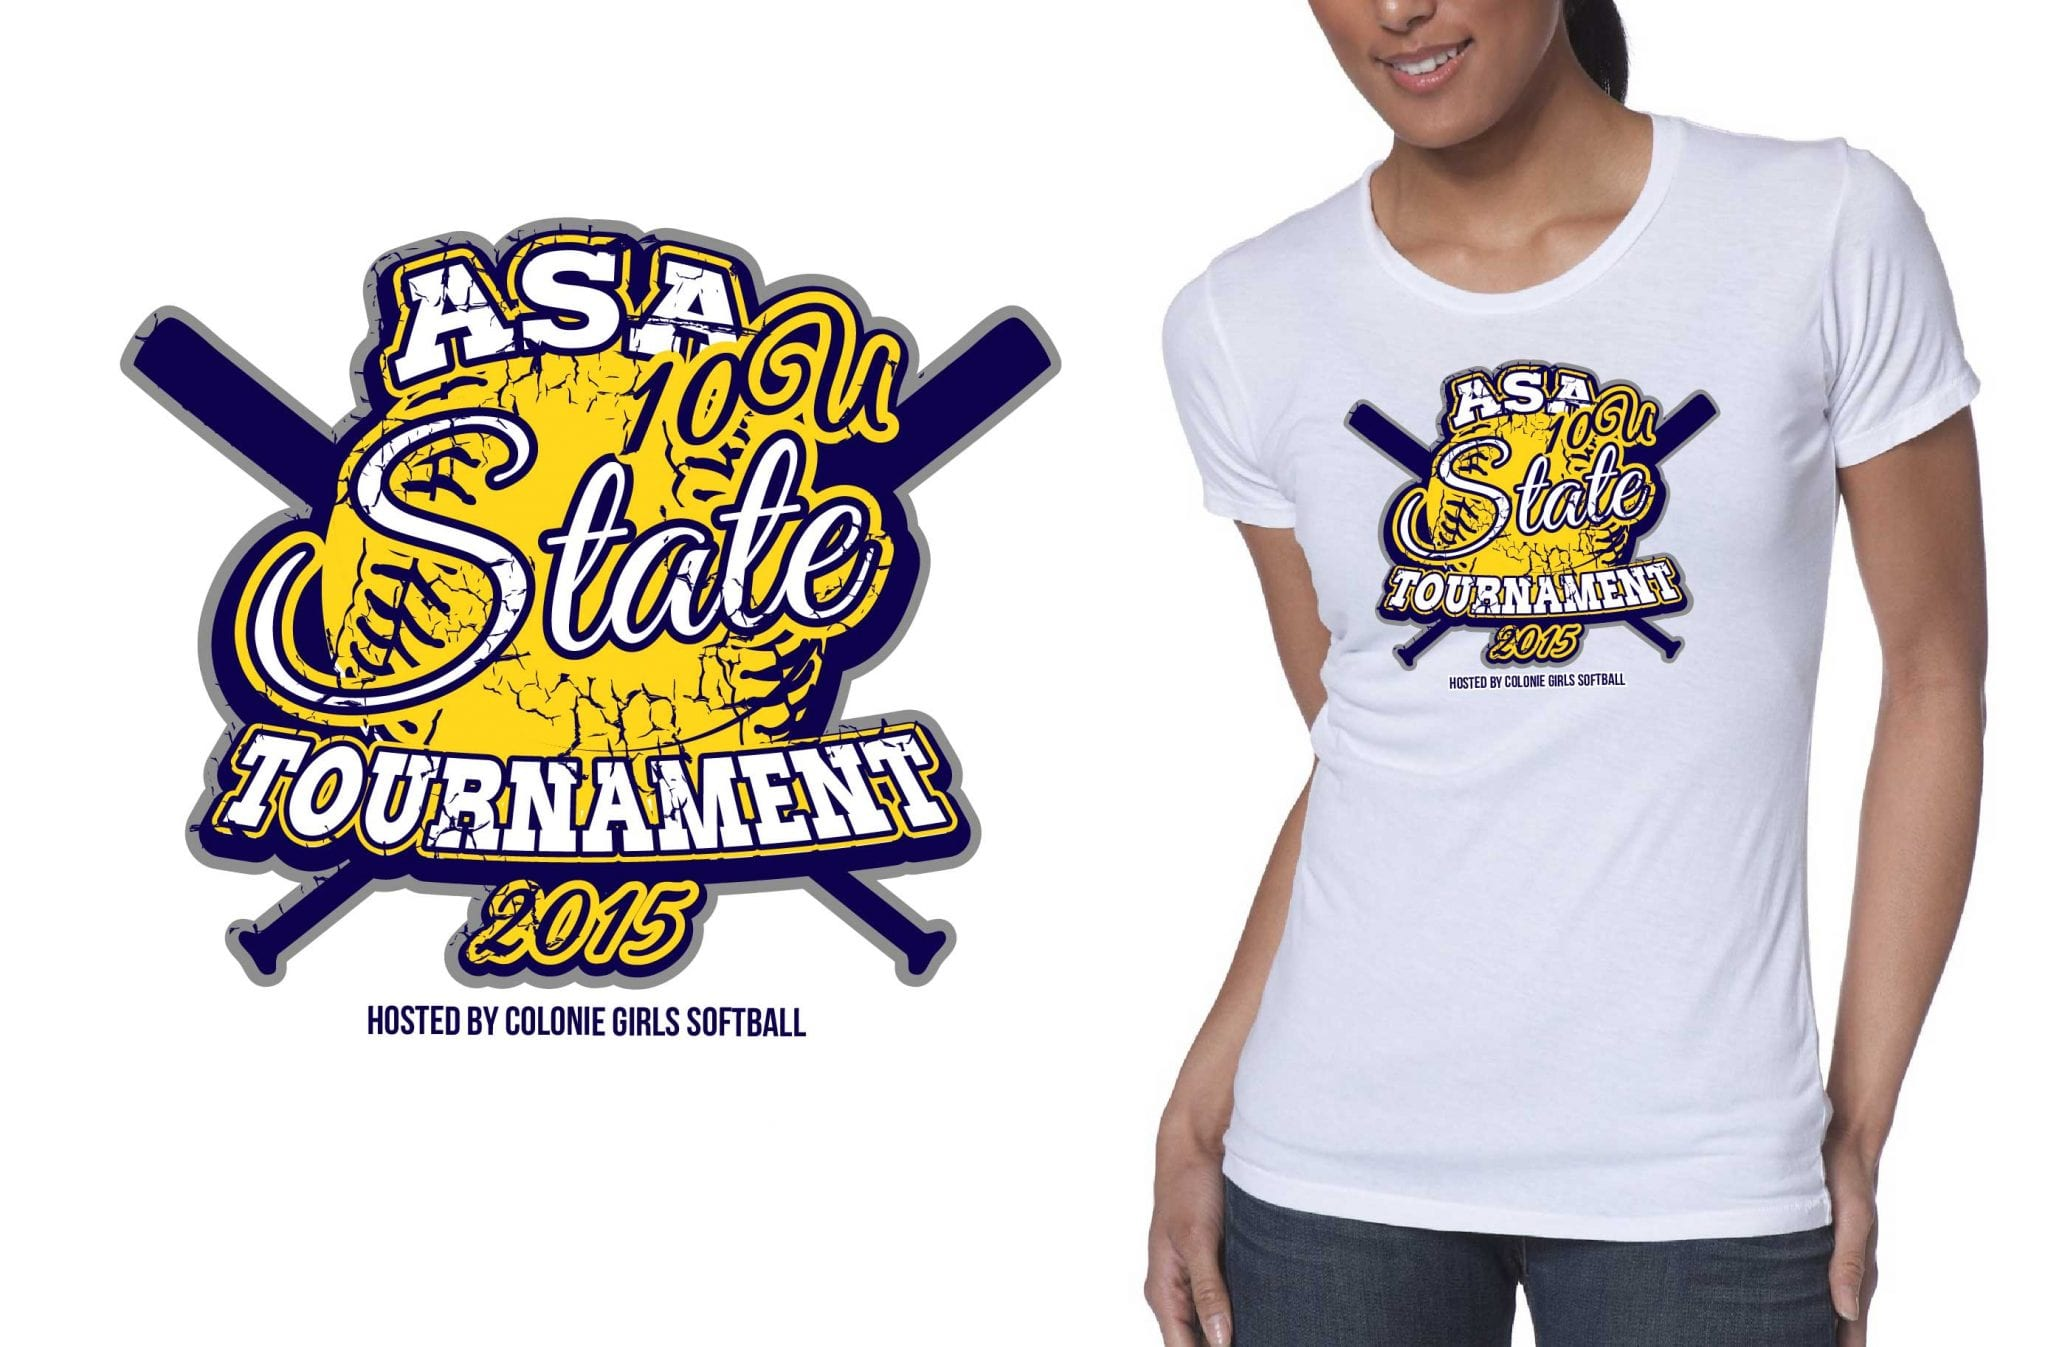 2015 10U ASA State Tournament awesome t shirt logo design for softball event by ur art studio